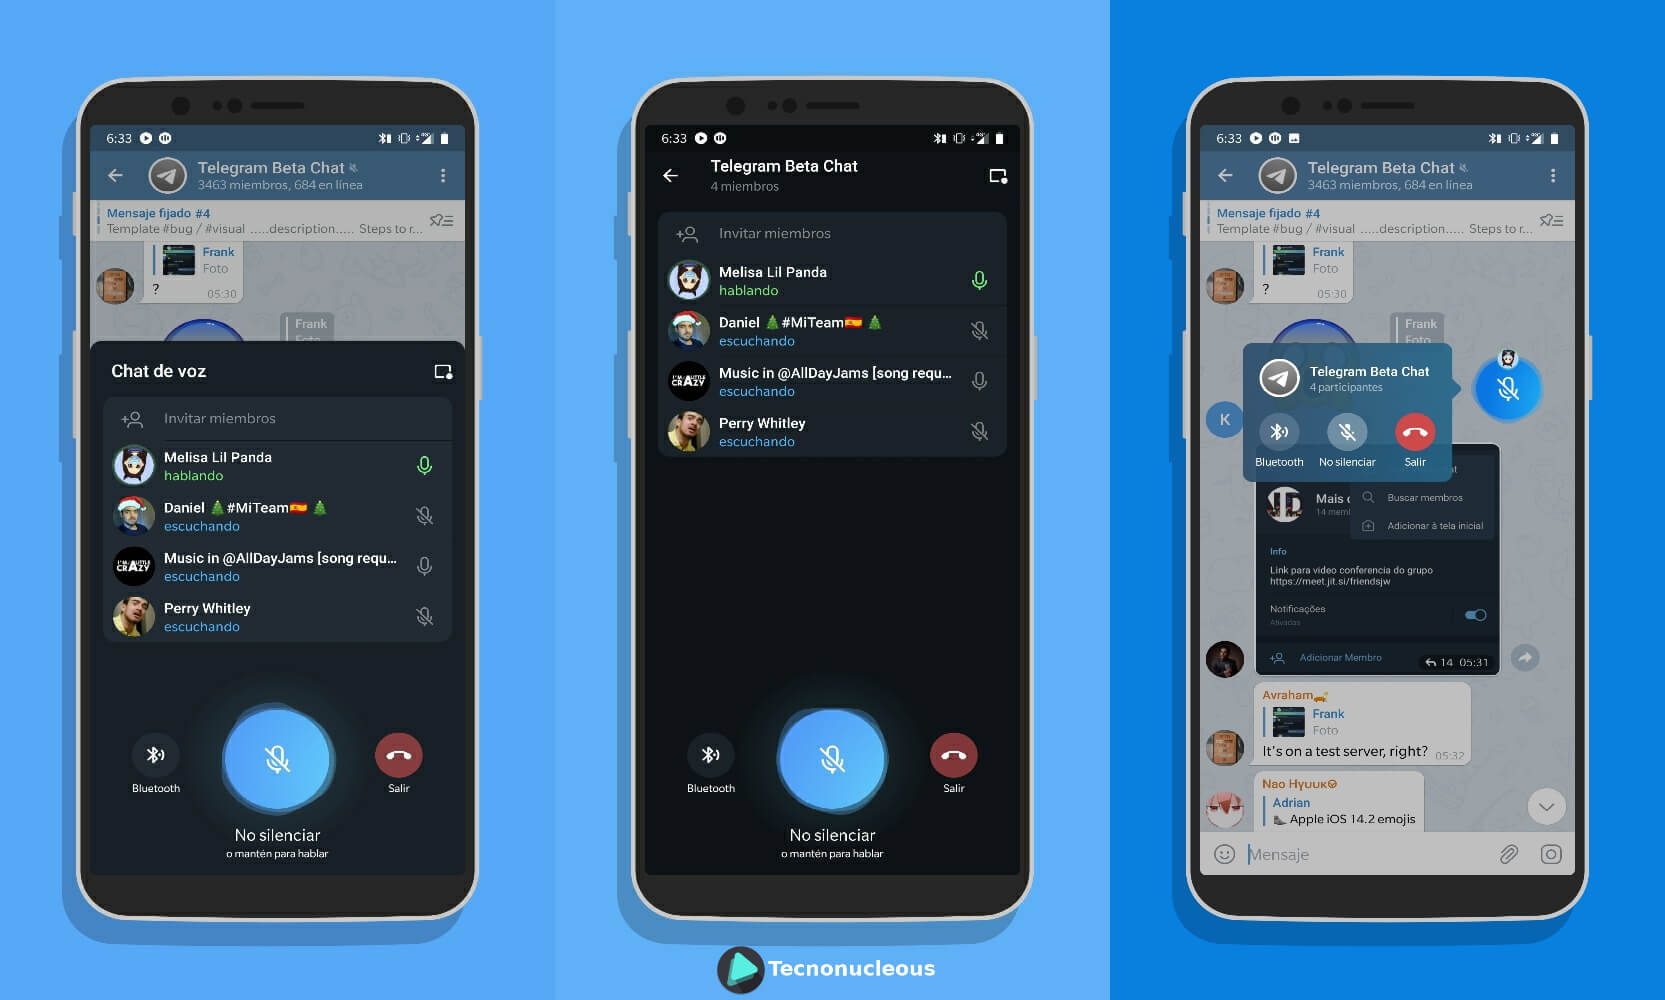 Interfaz Chat de Voz Telegram 7.3